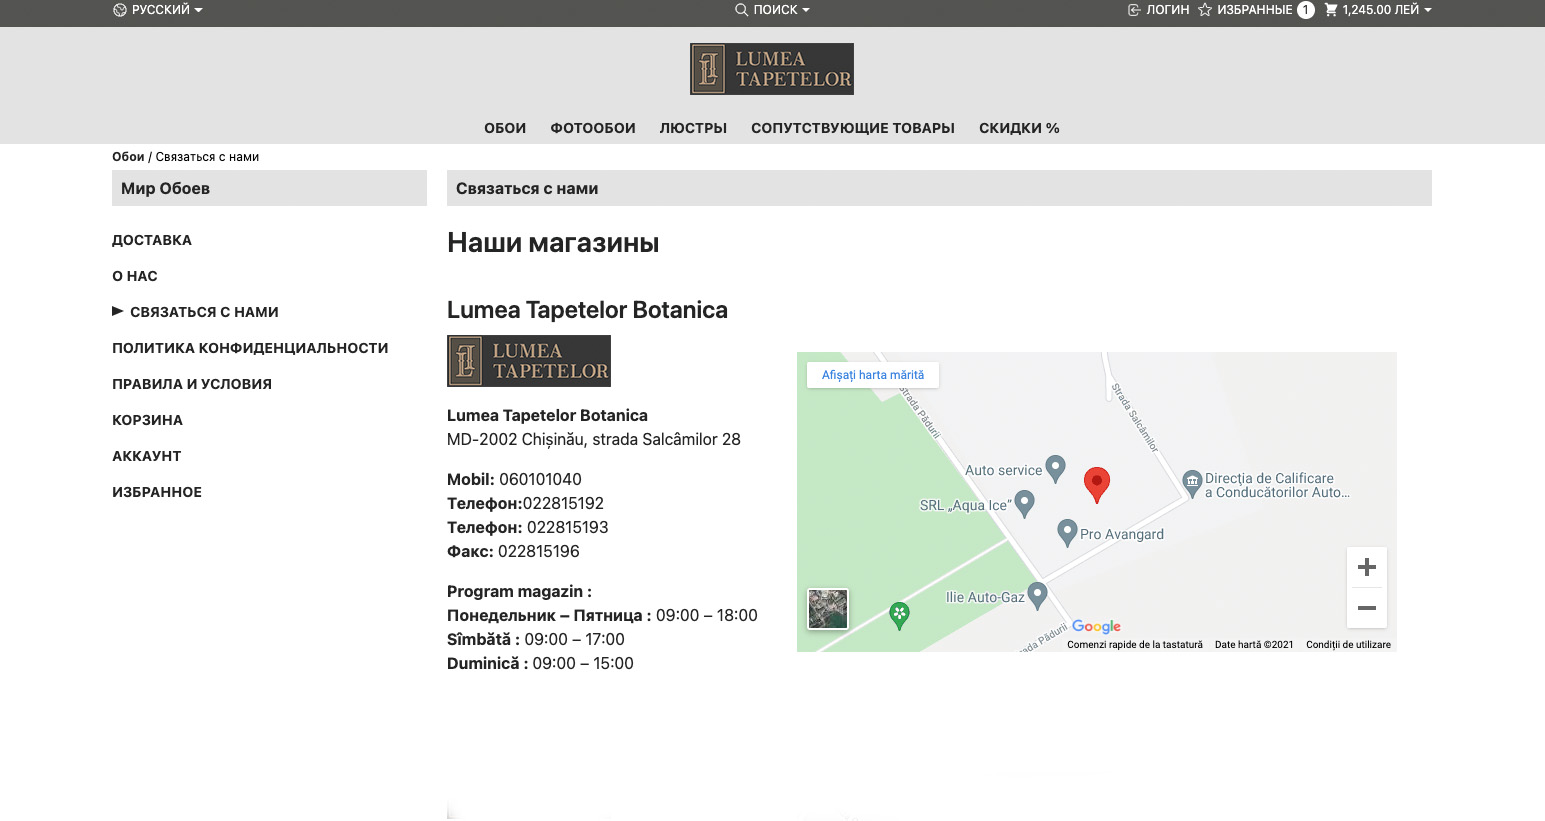 Redesign of the online store Lumea Tapetelor 26